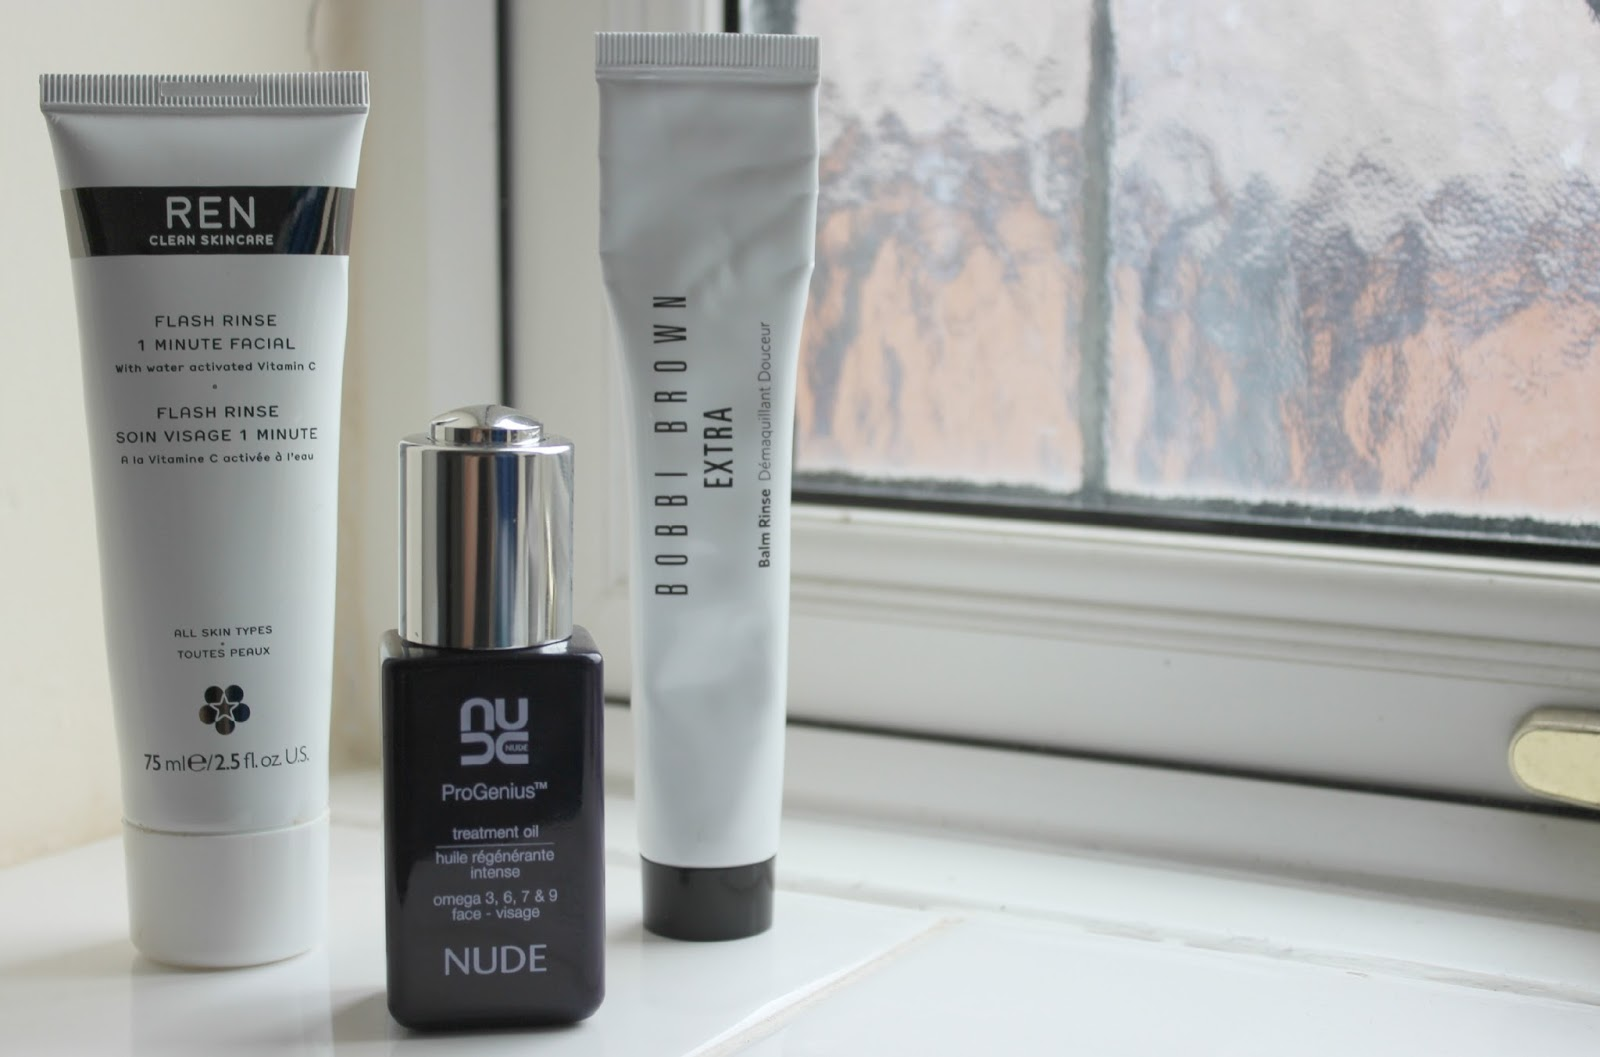 A picture of the Bobbi Brown Extra Balm Rinse To-Go, Nude ProGenius Omega Treatment Oil and REN Flash Rinse 1 Minute Facial